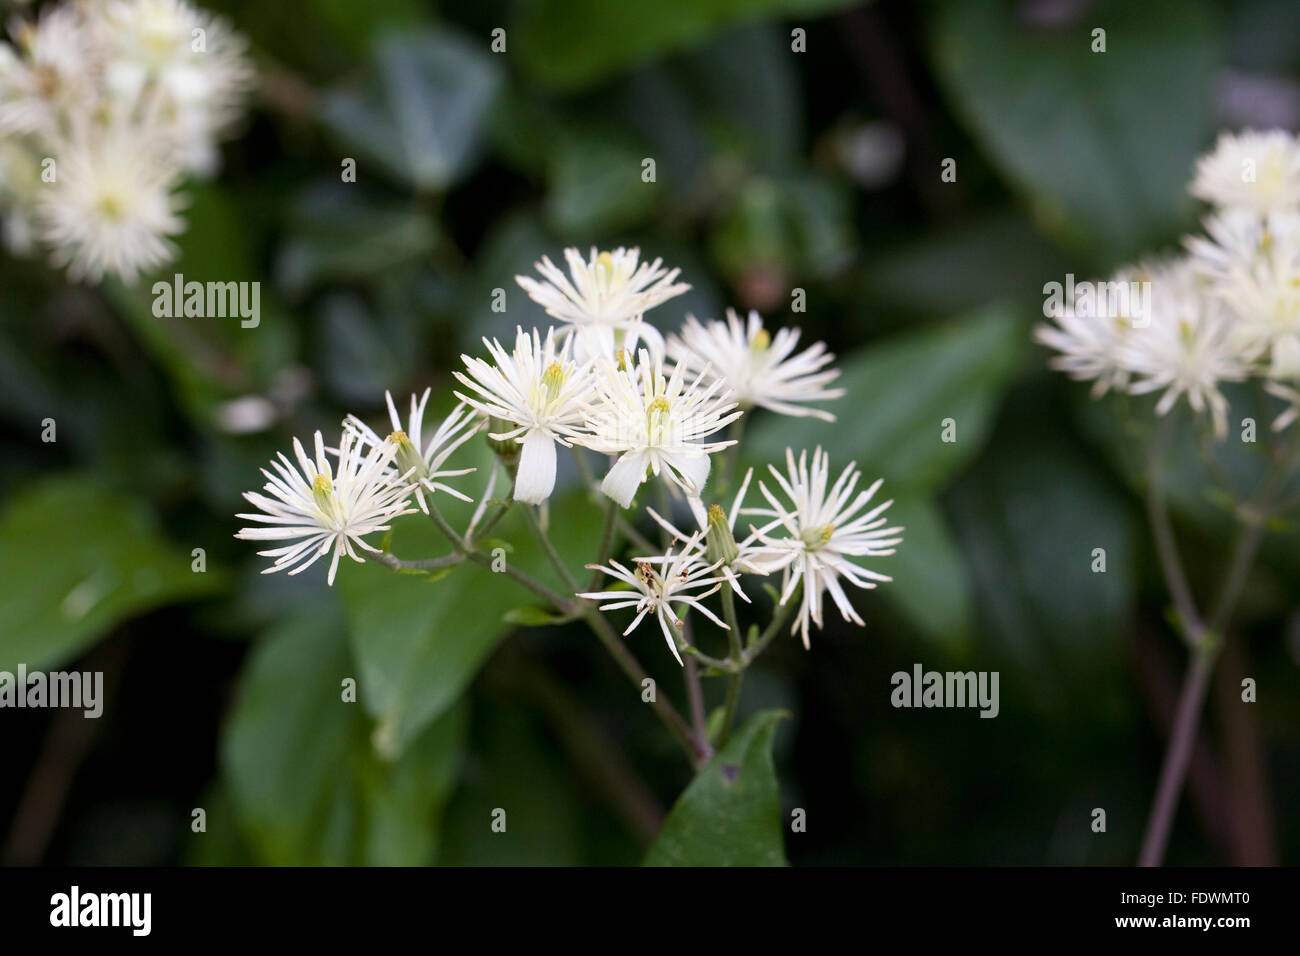 Clematis vitalba. Wild clematis growing in the hedgerow. - Stock Image